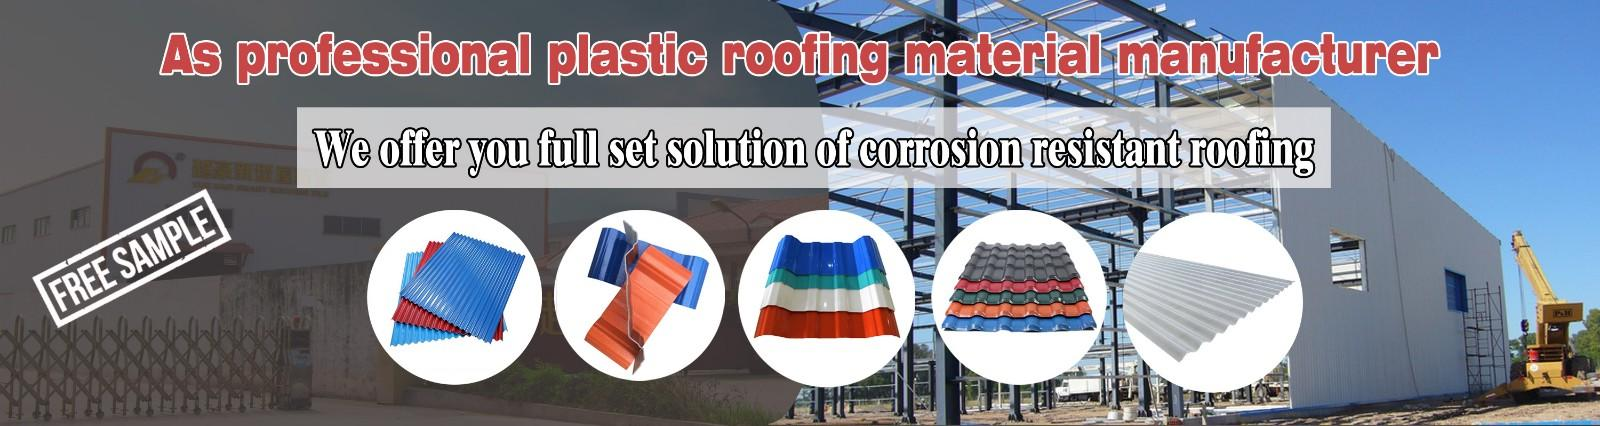 Yuehao plastic roof tiles wholesaler widely used PVC heat resistant roof overseas market for station-1